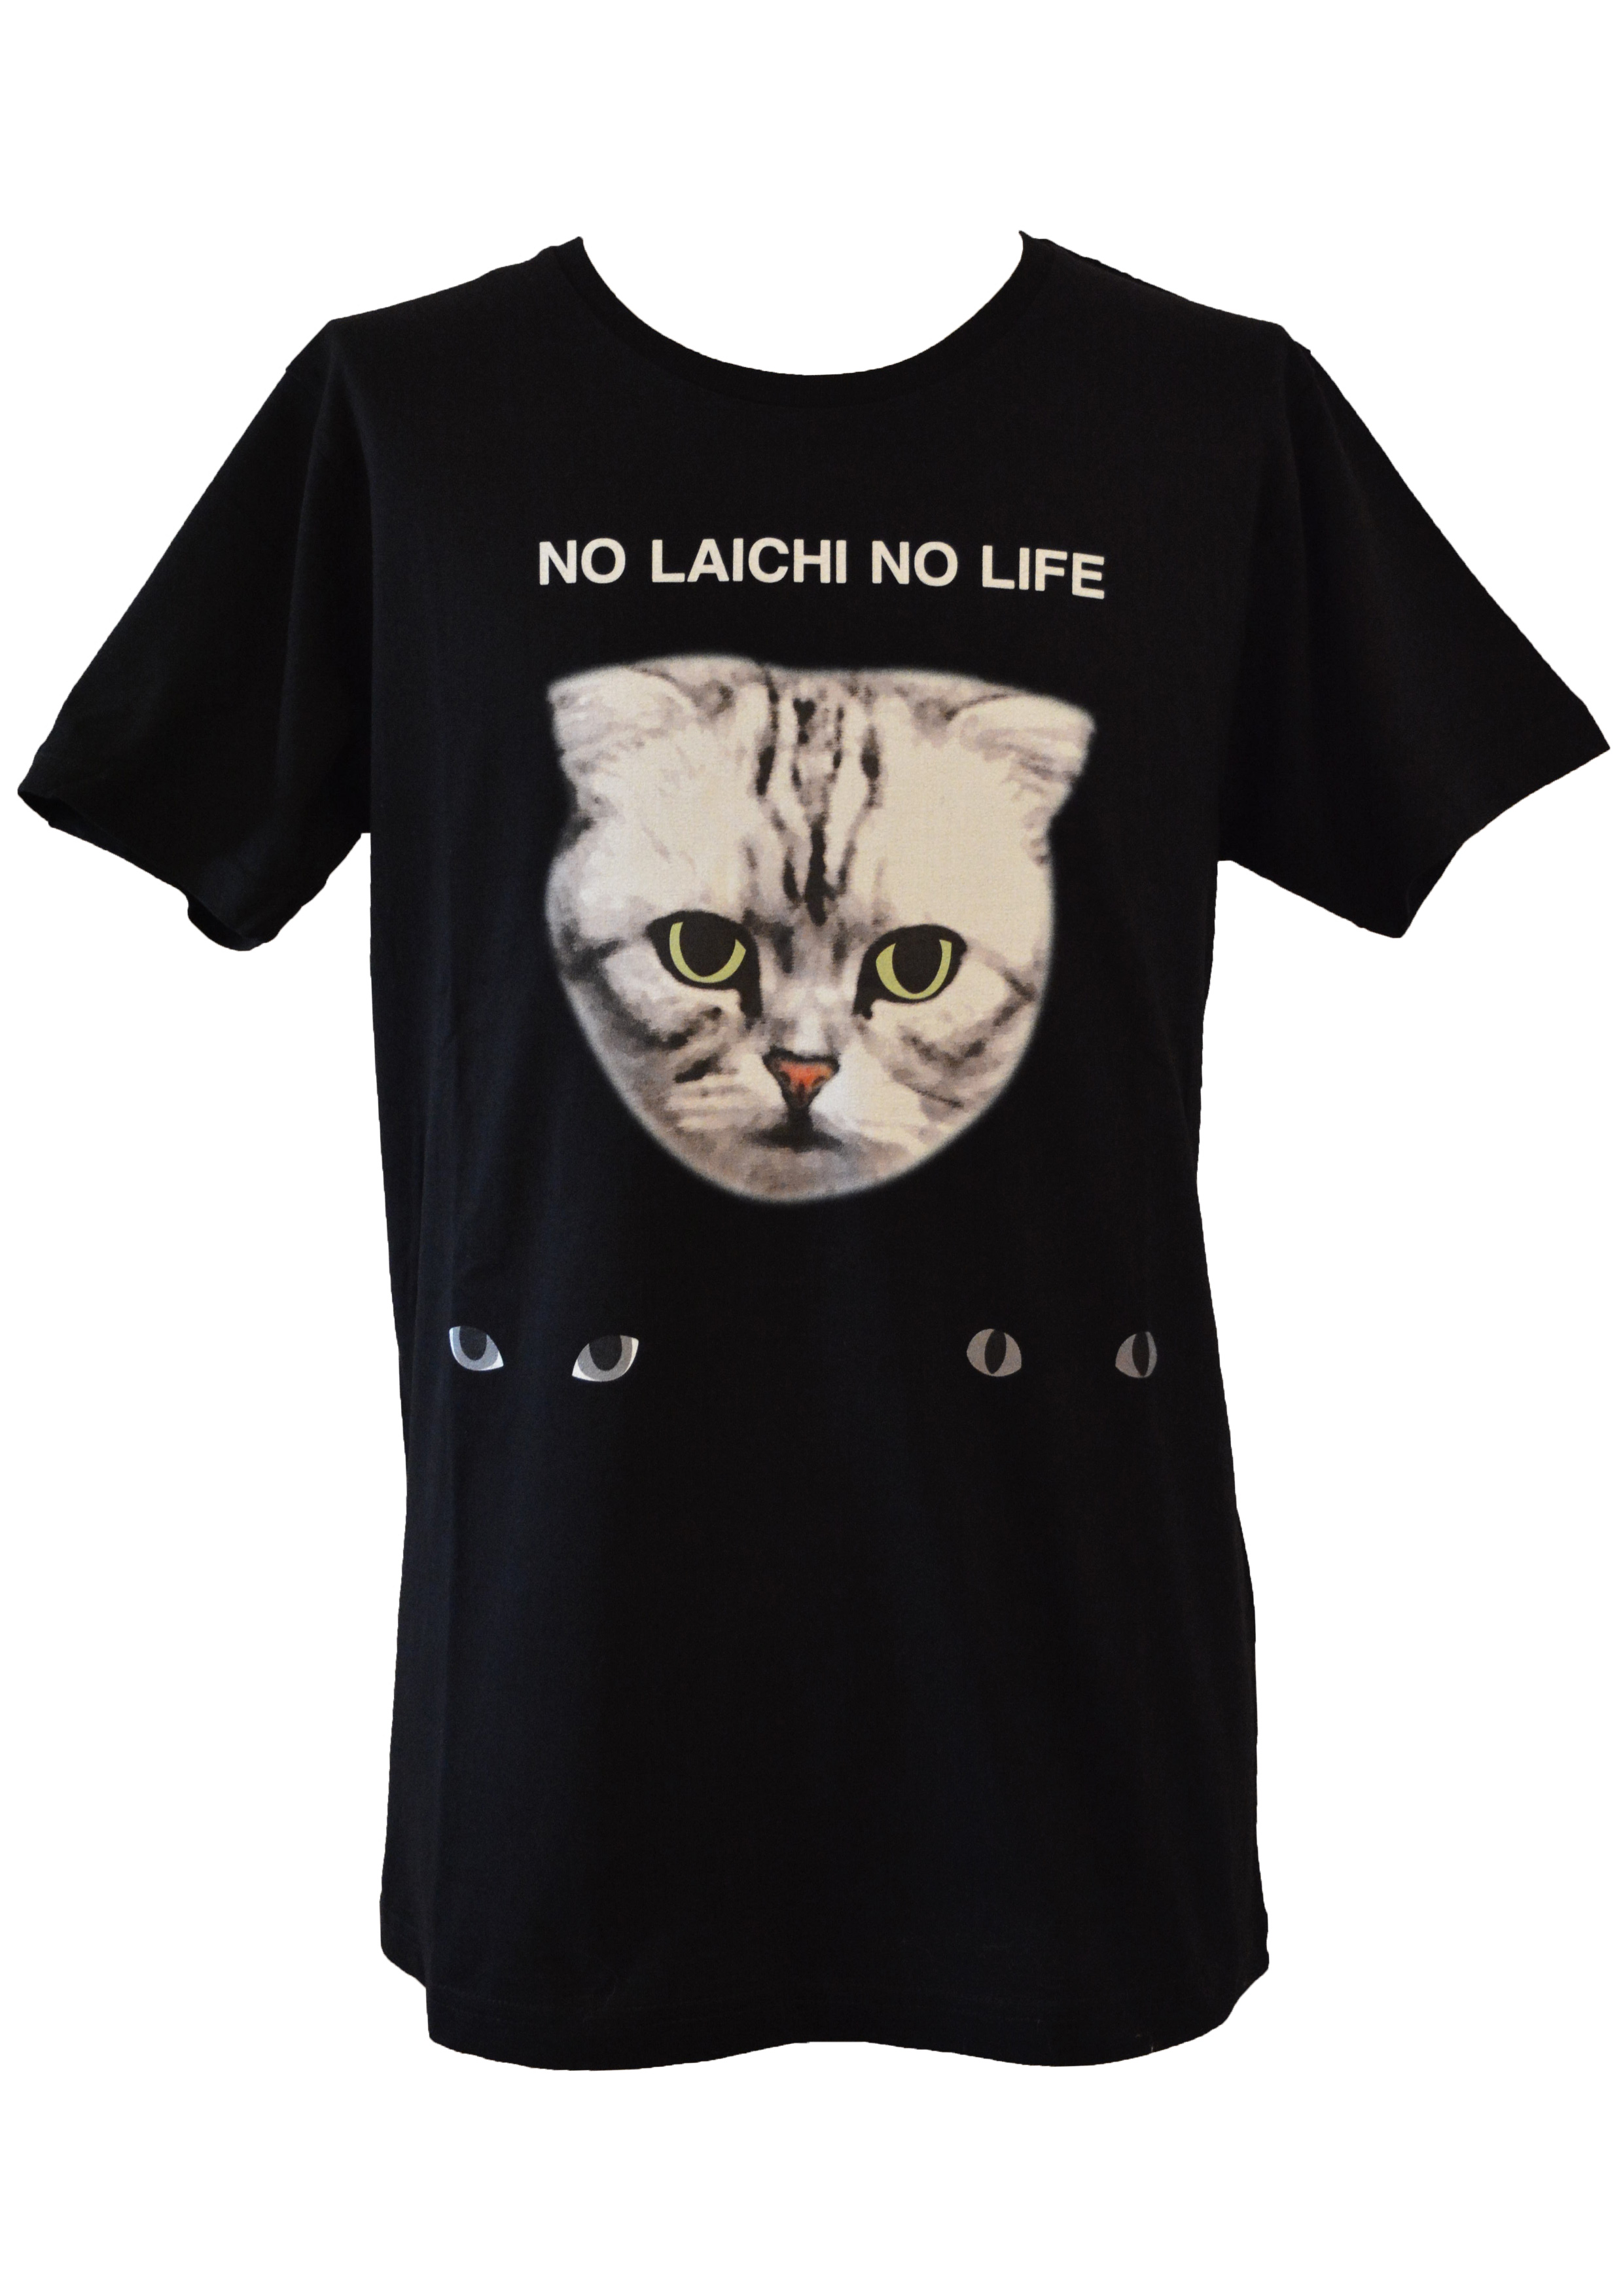 【selva secreta】LAICHI T-SHIRT (black)